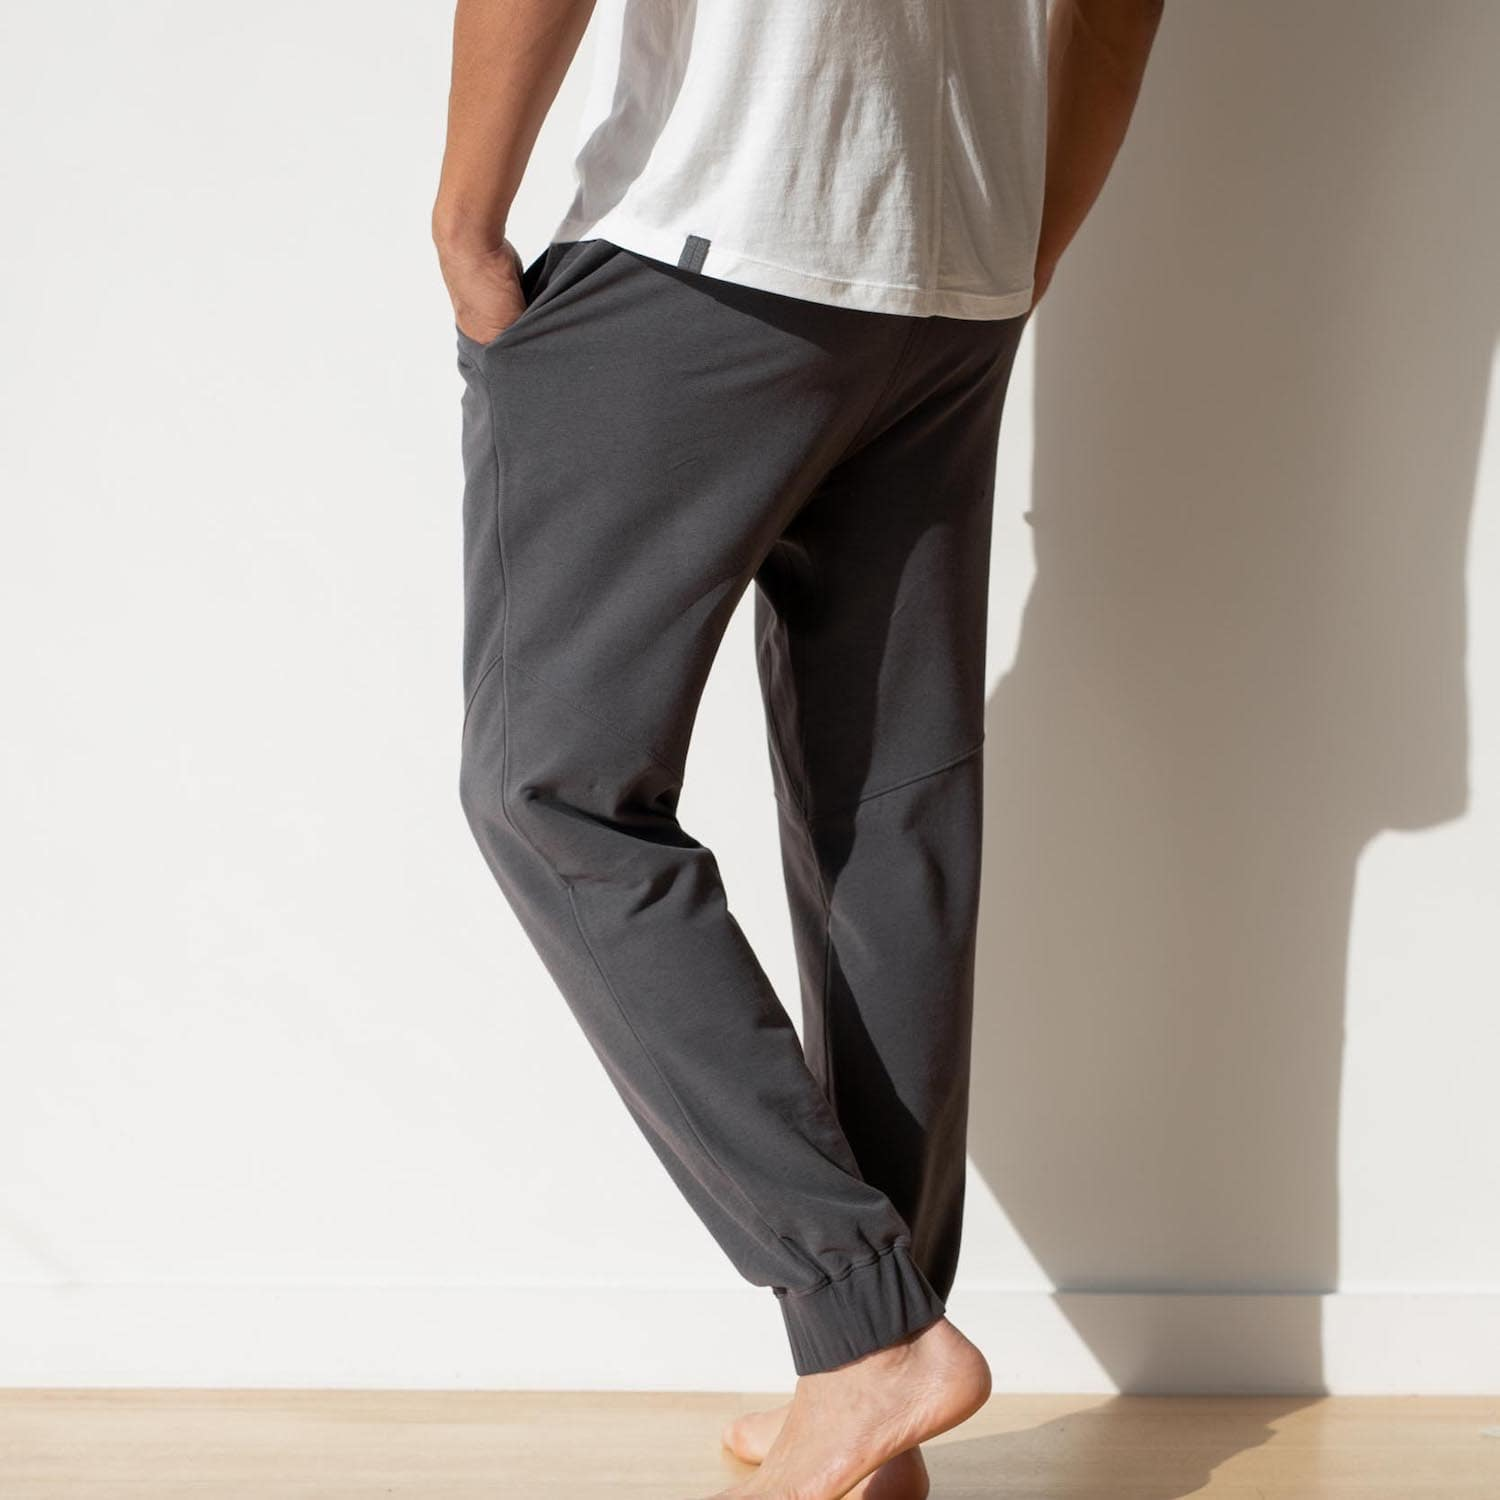 Lahgo Sleepwear Dreamy Wool Fleece Pant - #Eclipse